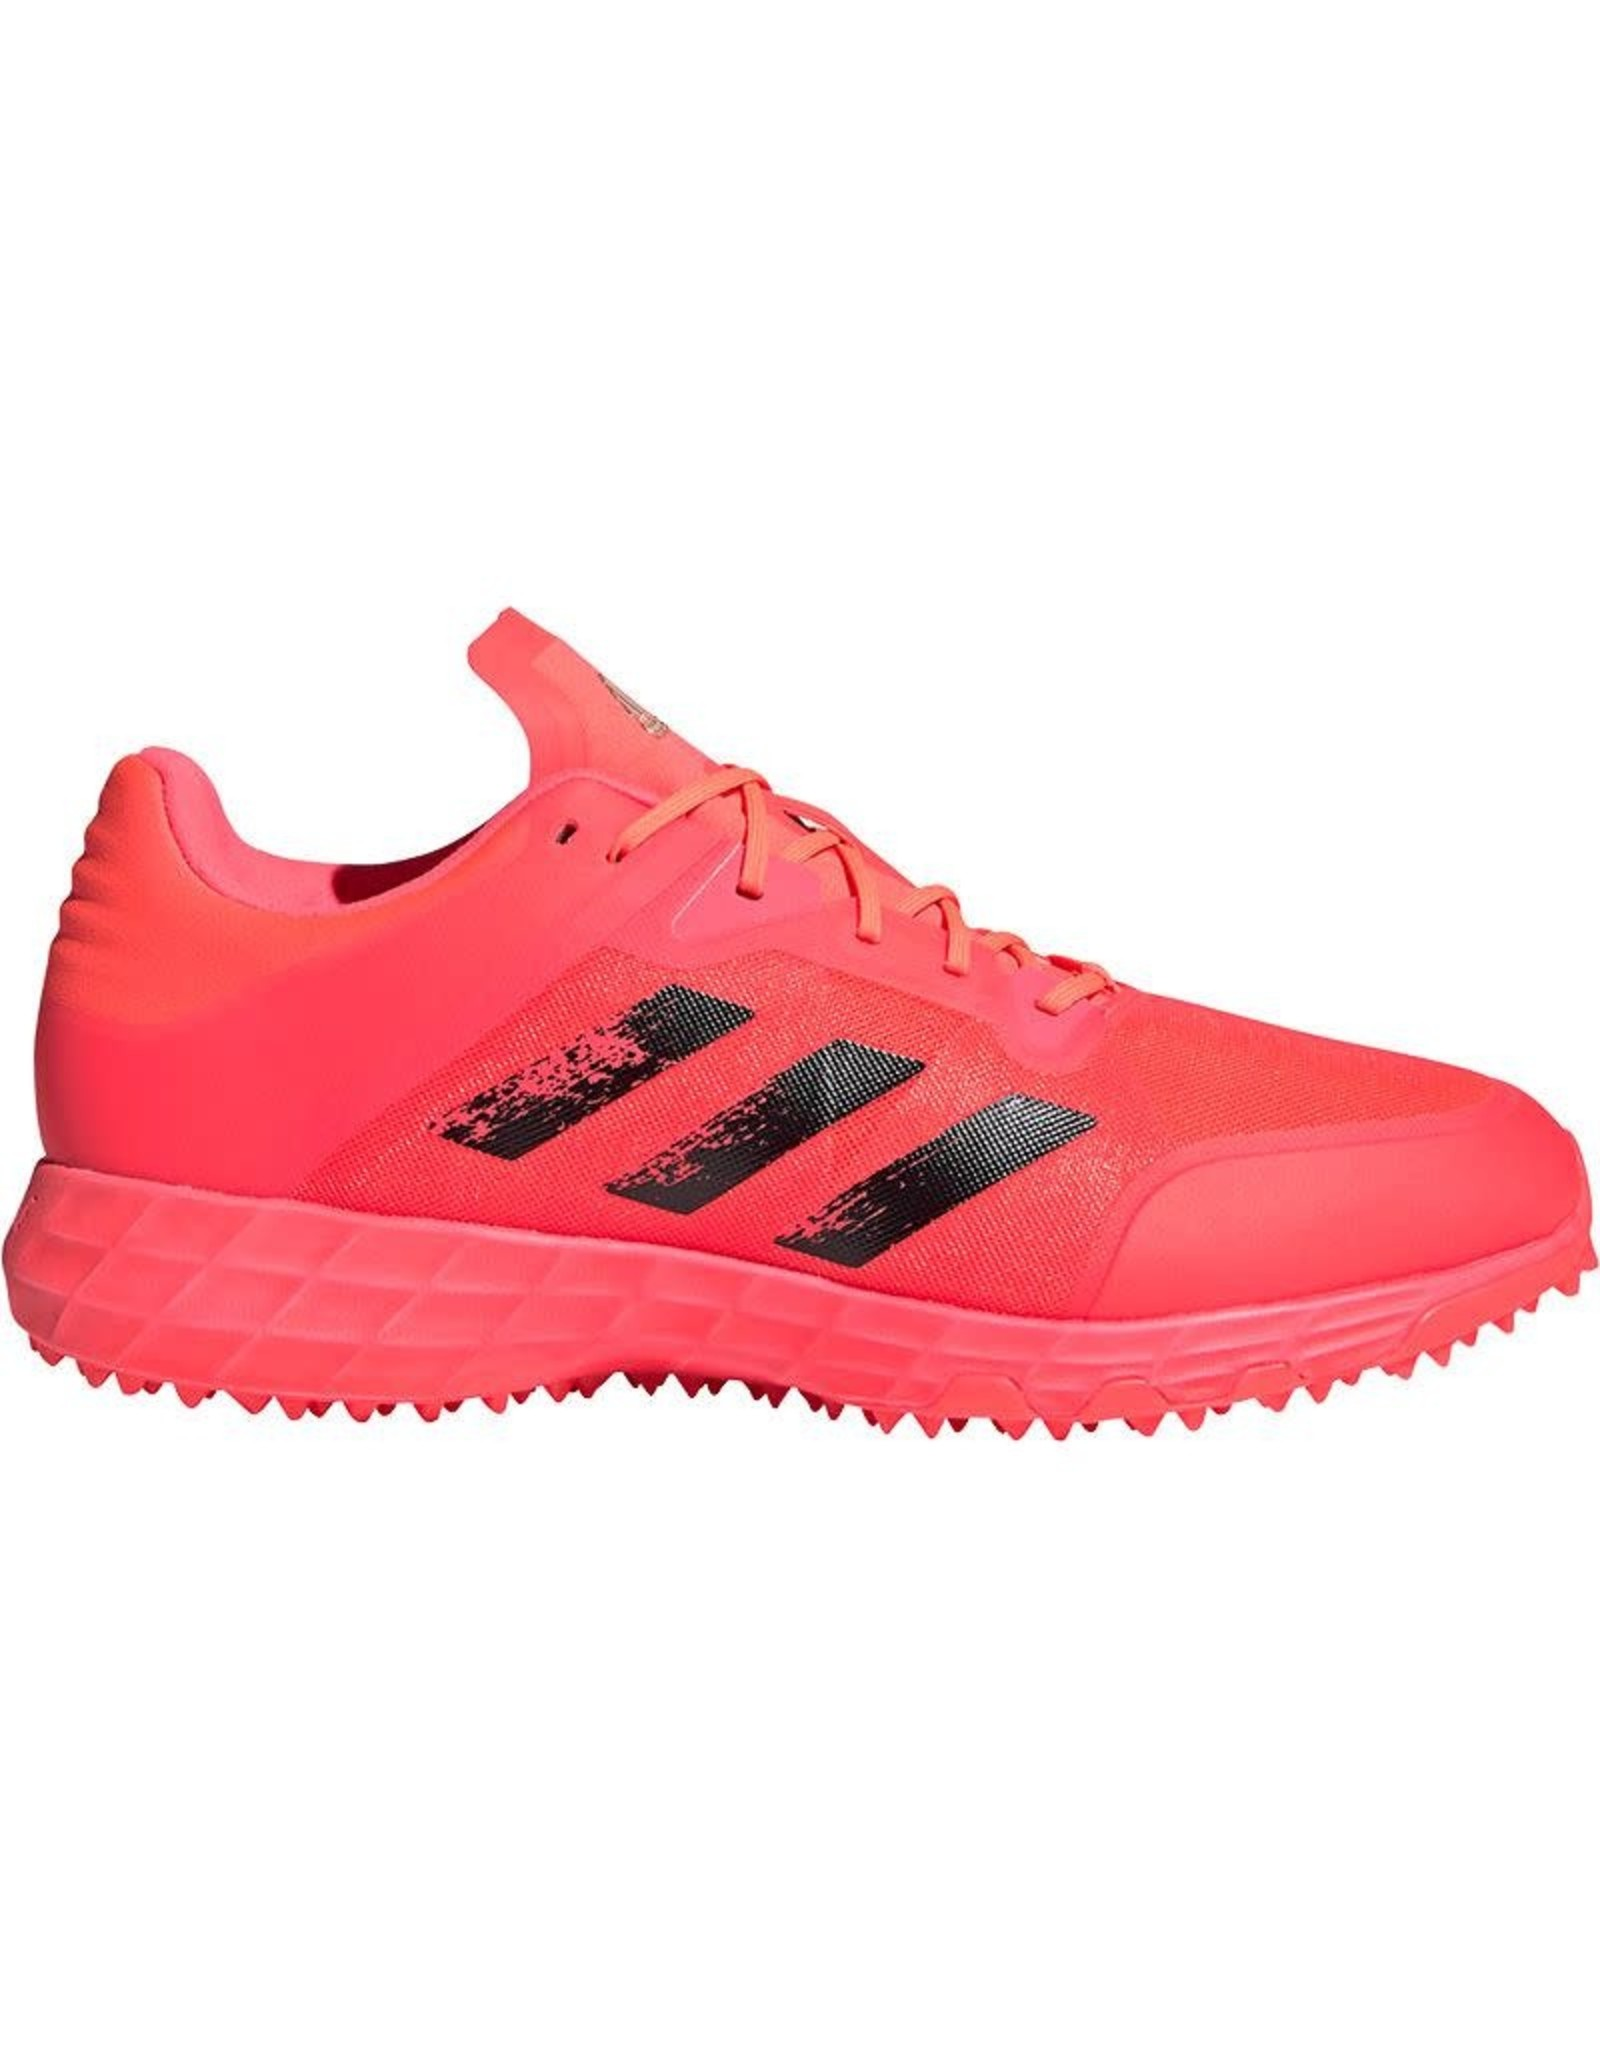 ADIDAS ADIDAS LUX 2.0 S 20-21 PINK